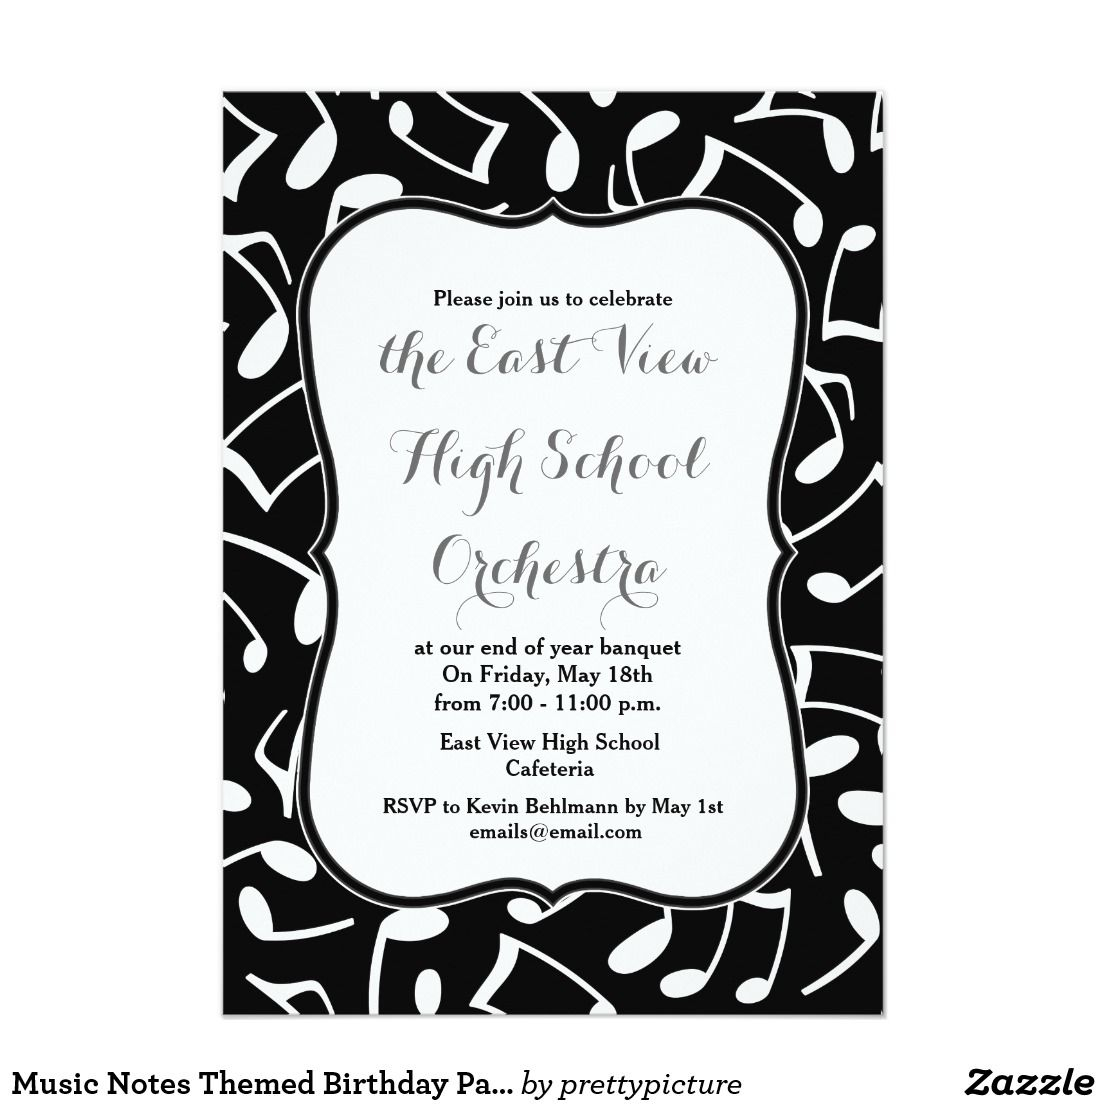 Music Notes Themed Birthday Party Invitation | Orchestra Banquet ...